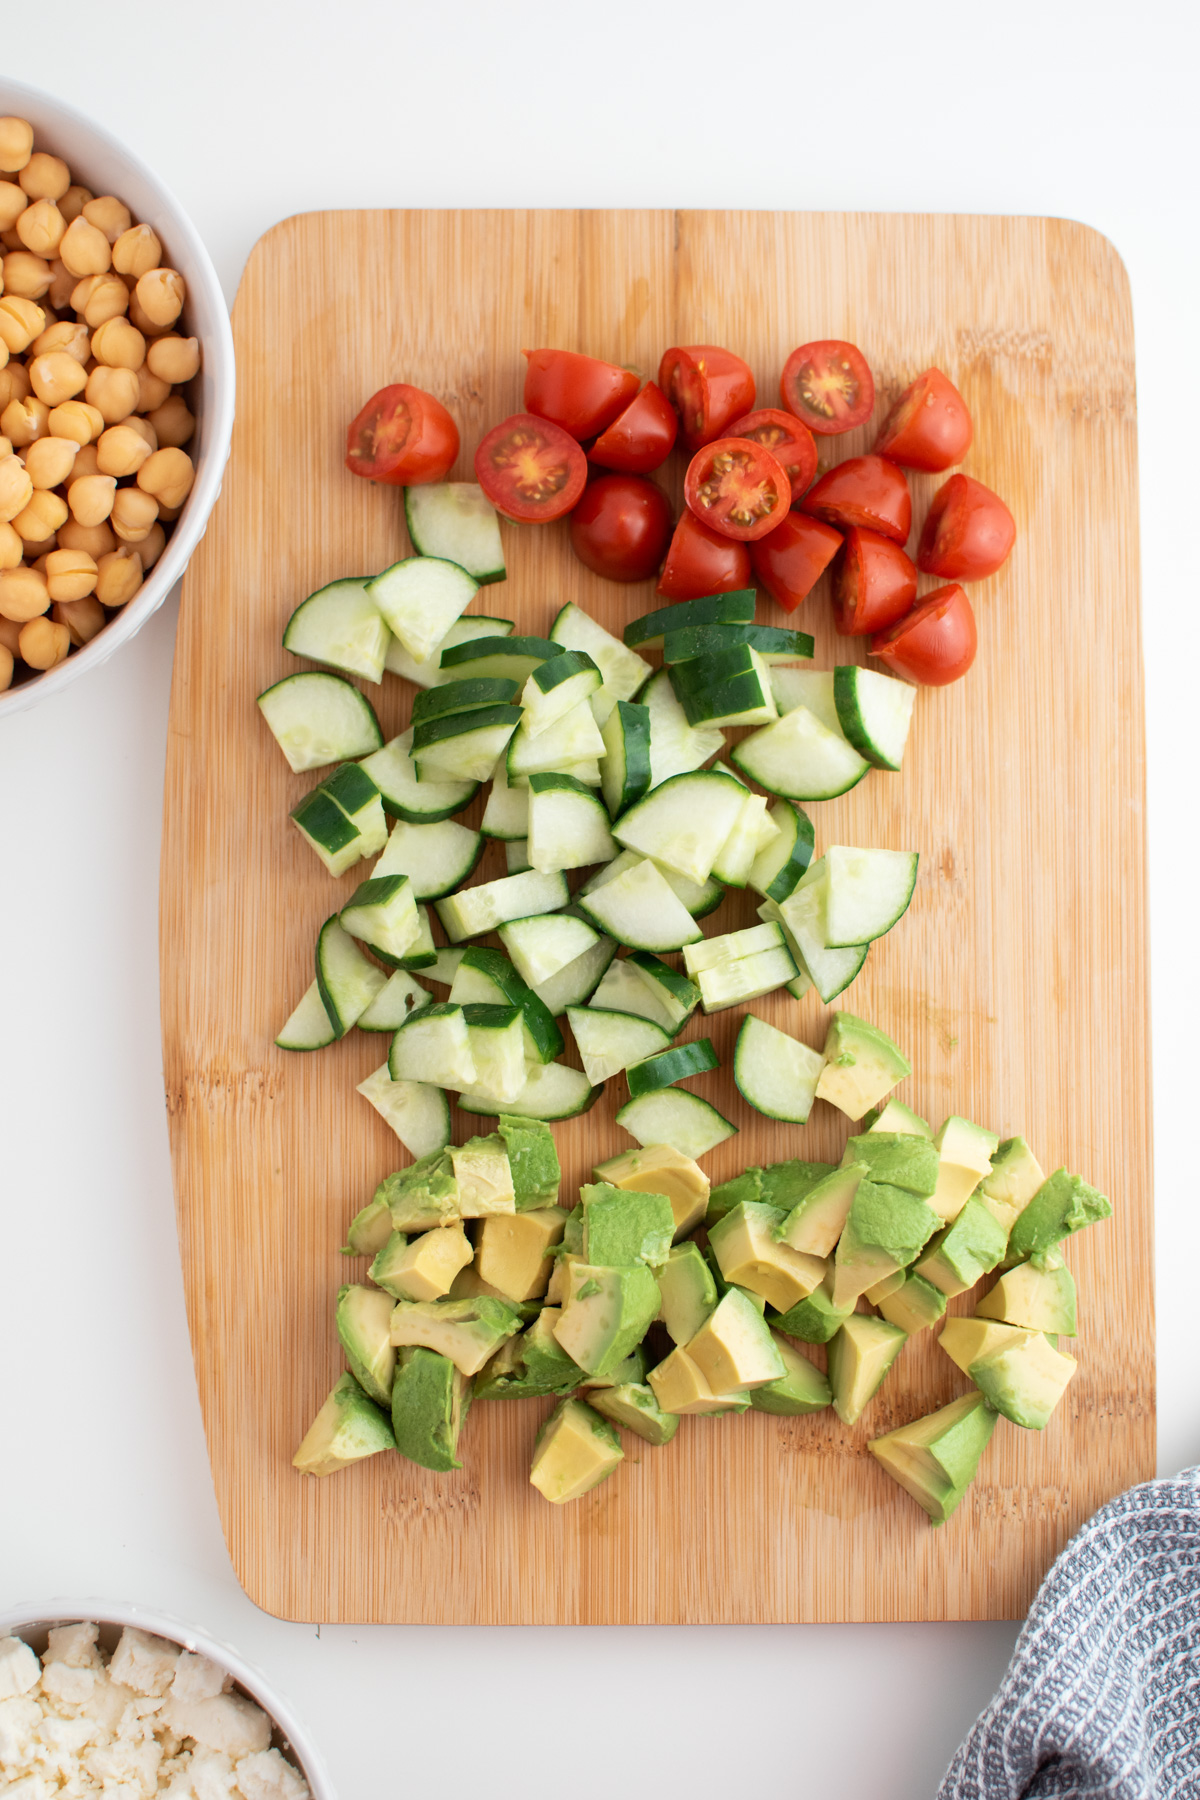 Chopped tomatoes, cucumbers, and avocado on wooden cutting board next to feta and chickpeas.